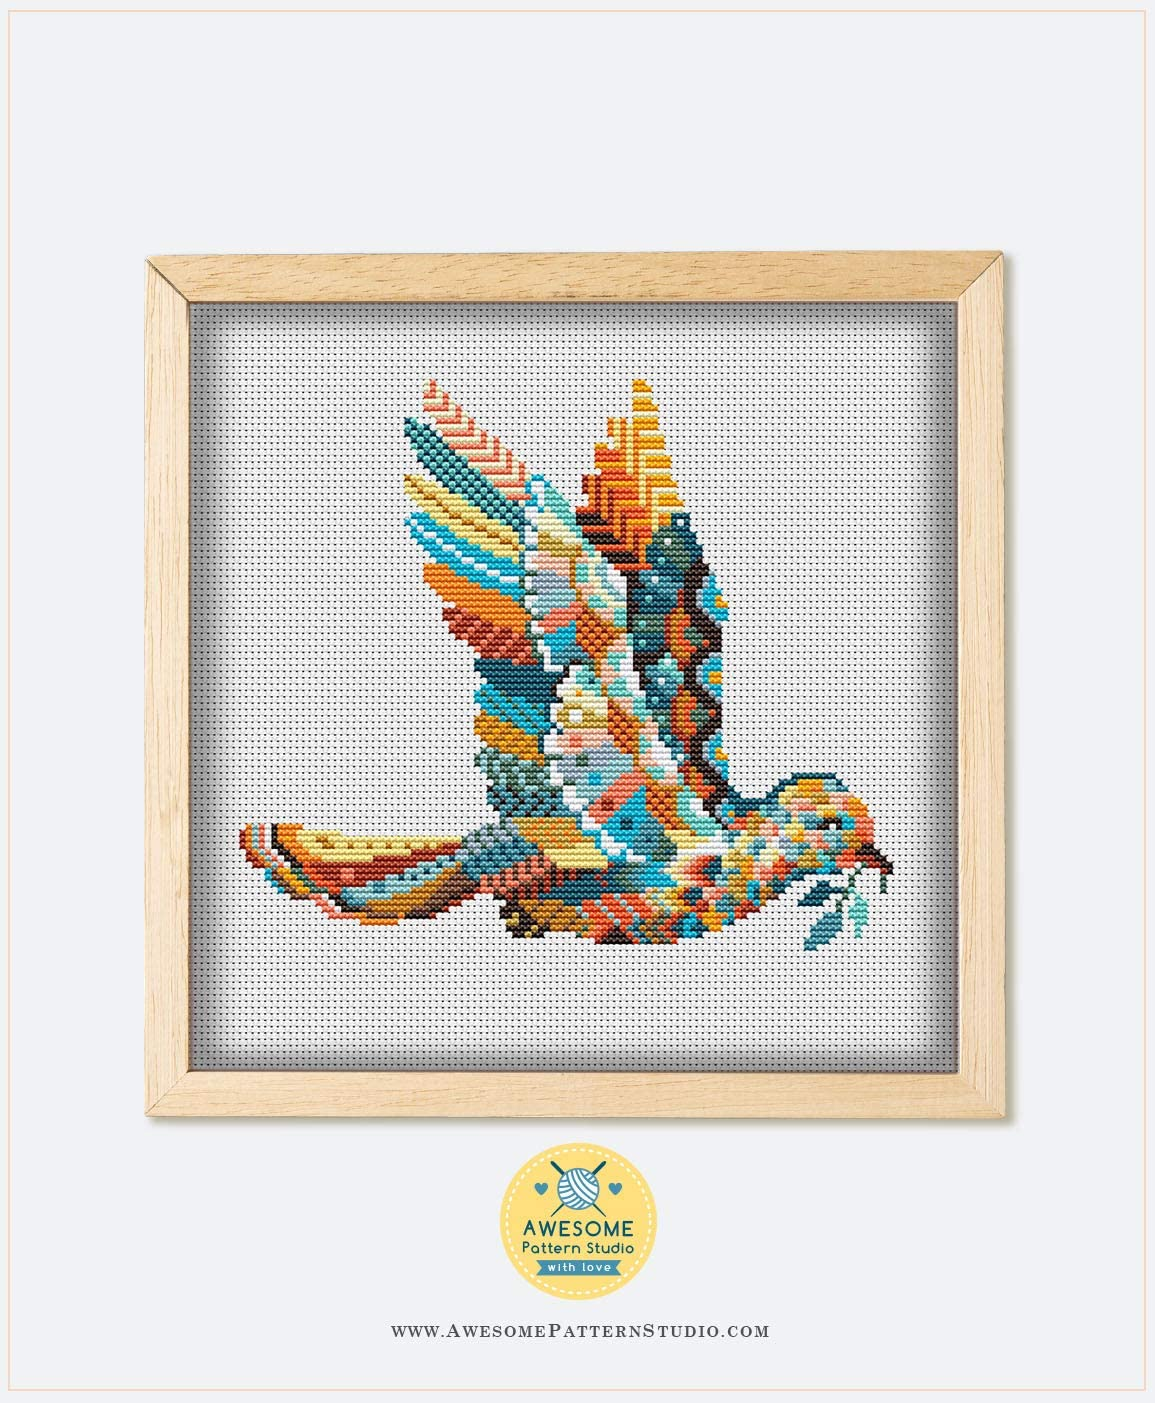 Mandala Dove K533 Counted Cross Stitch Pattern 4 Printed Schemes Inside Hoops Needles No Fabric Threads Embroidery Pattern